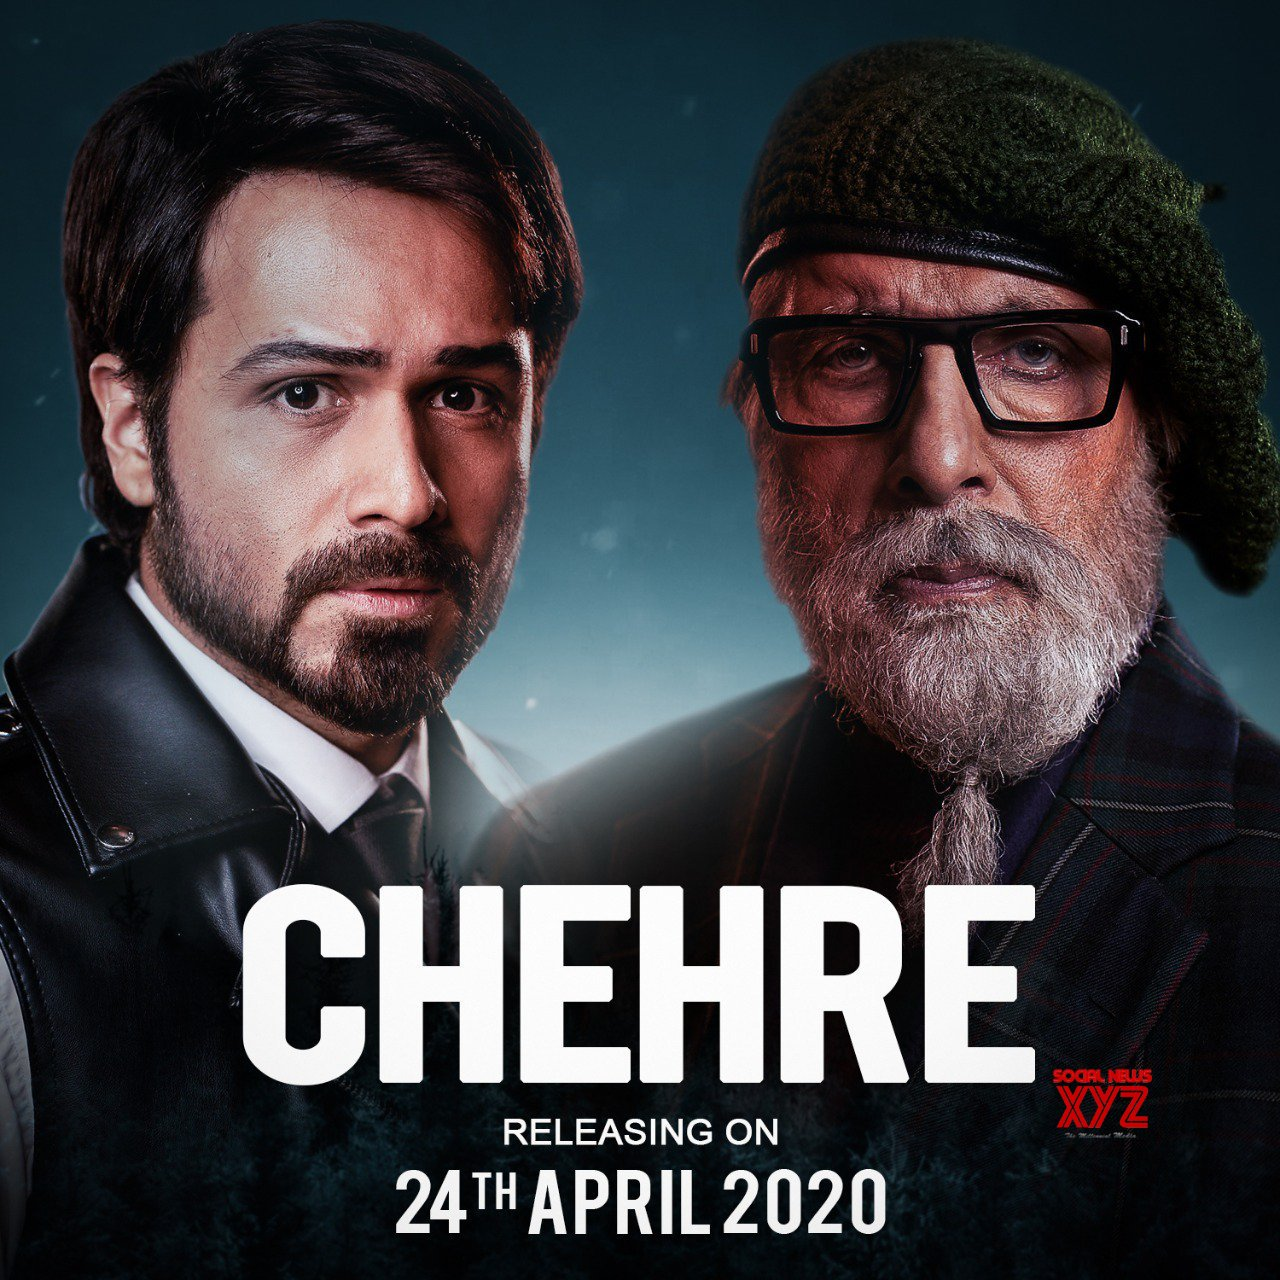 Amitabh Bachchan And Emraan Hashmi's Chehre Movie First Look Poster